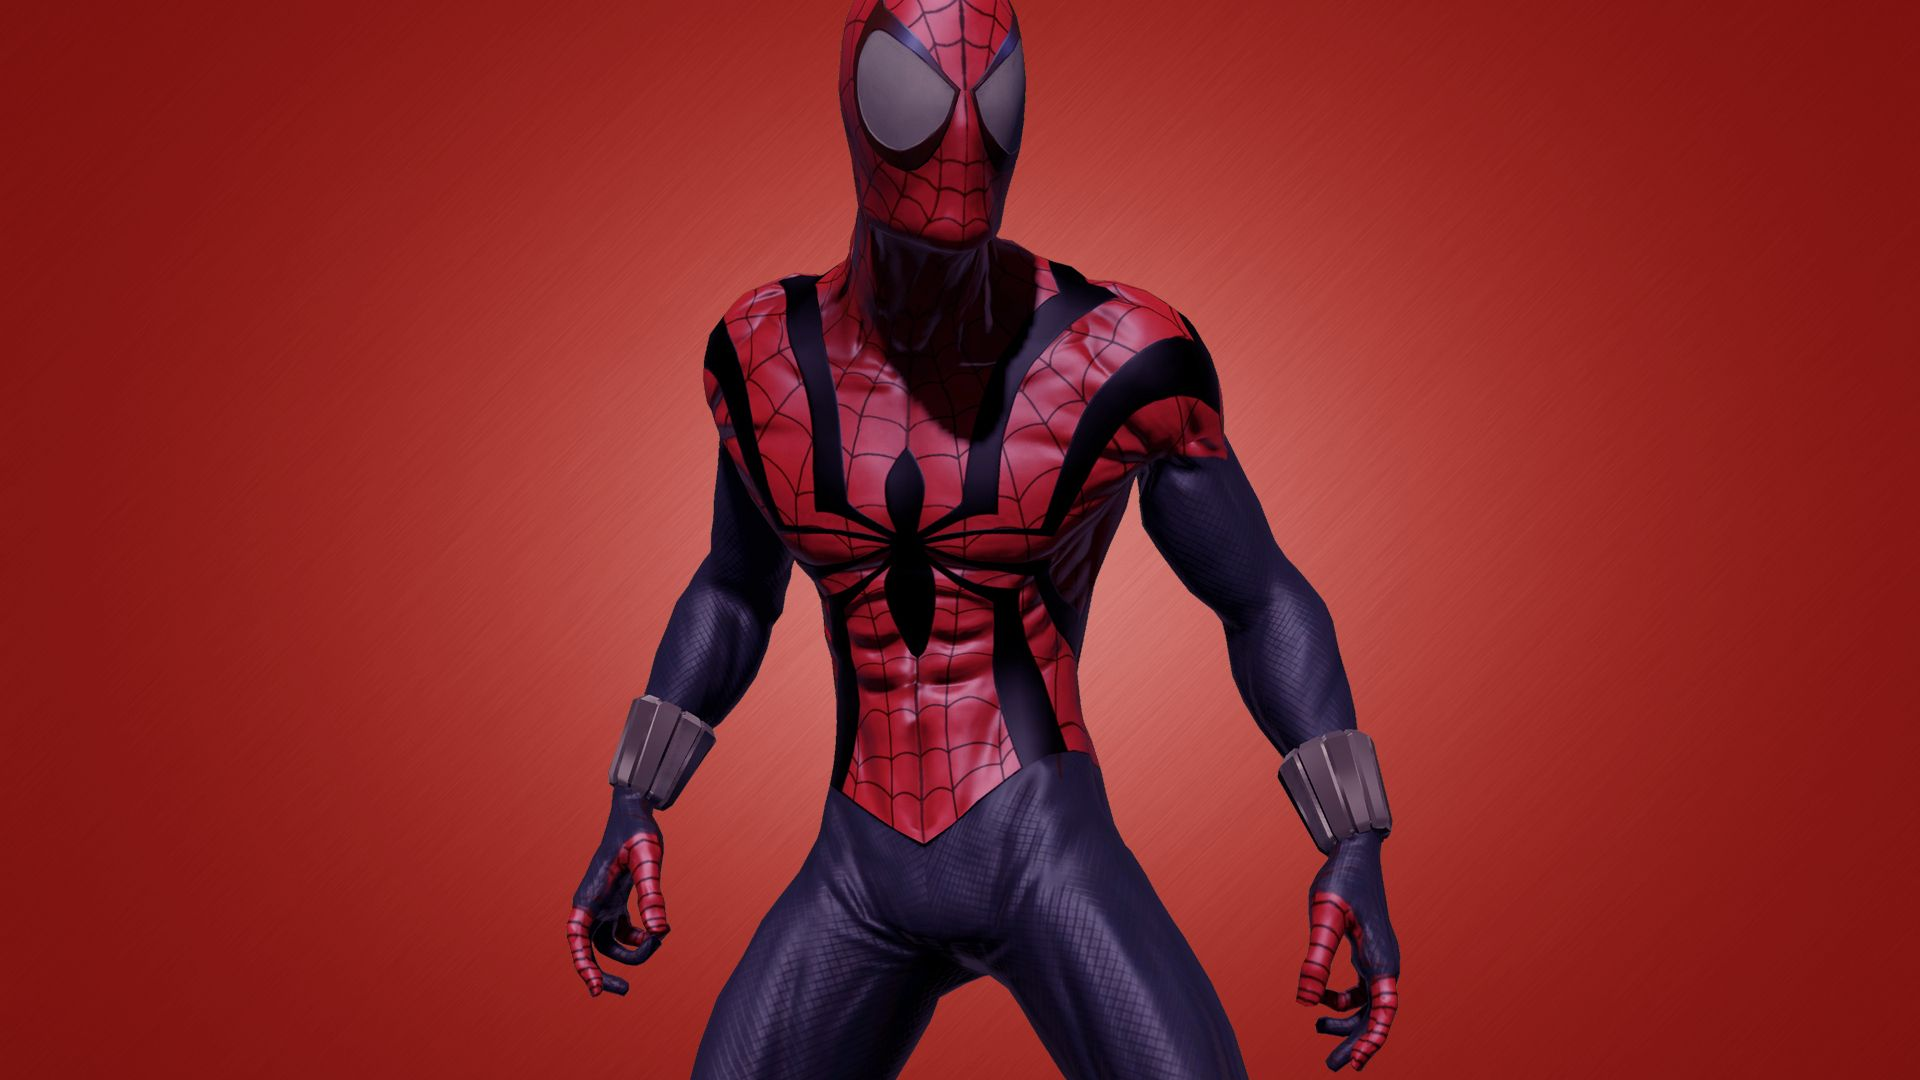 Collection of Cool Spiderman Wallpapers on HDWallpapers ×